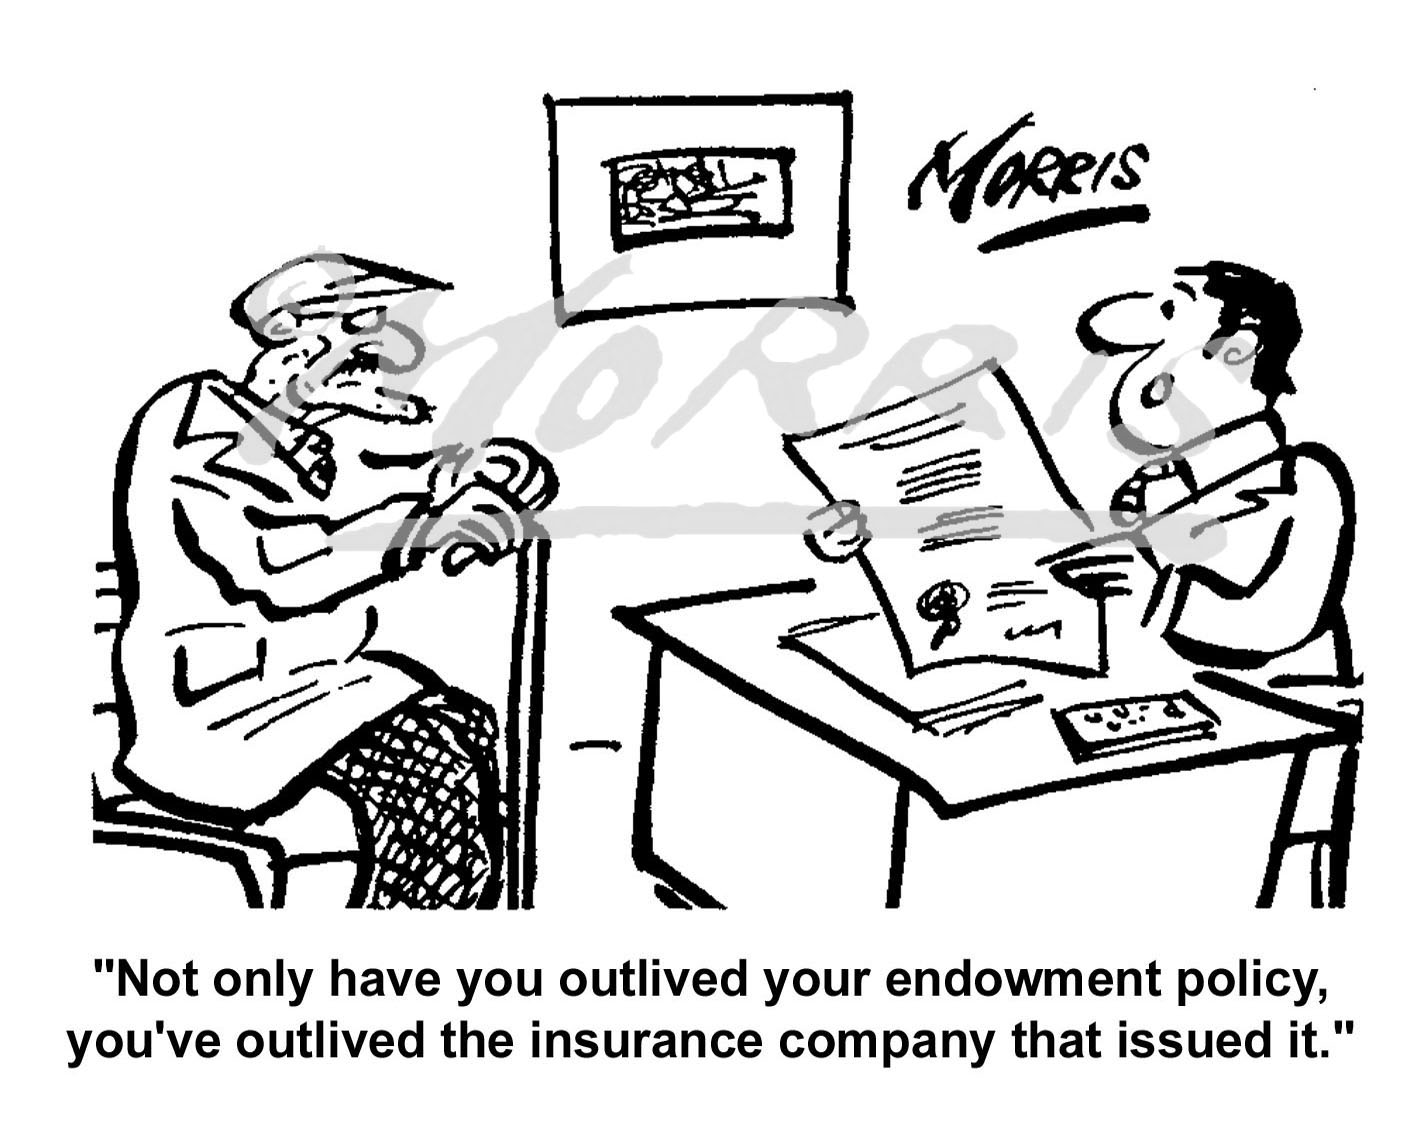 Insurance endowment policy comic cartoon – Ref: 0312bw